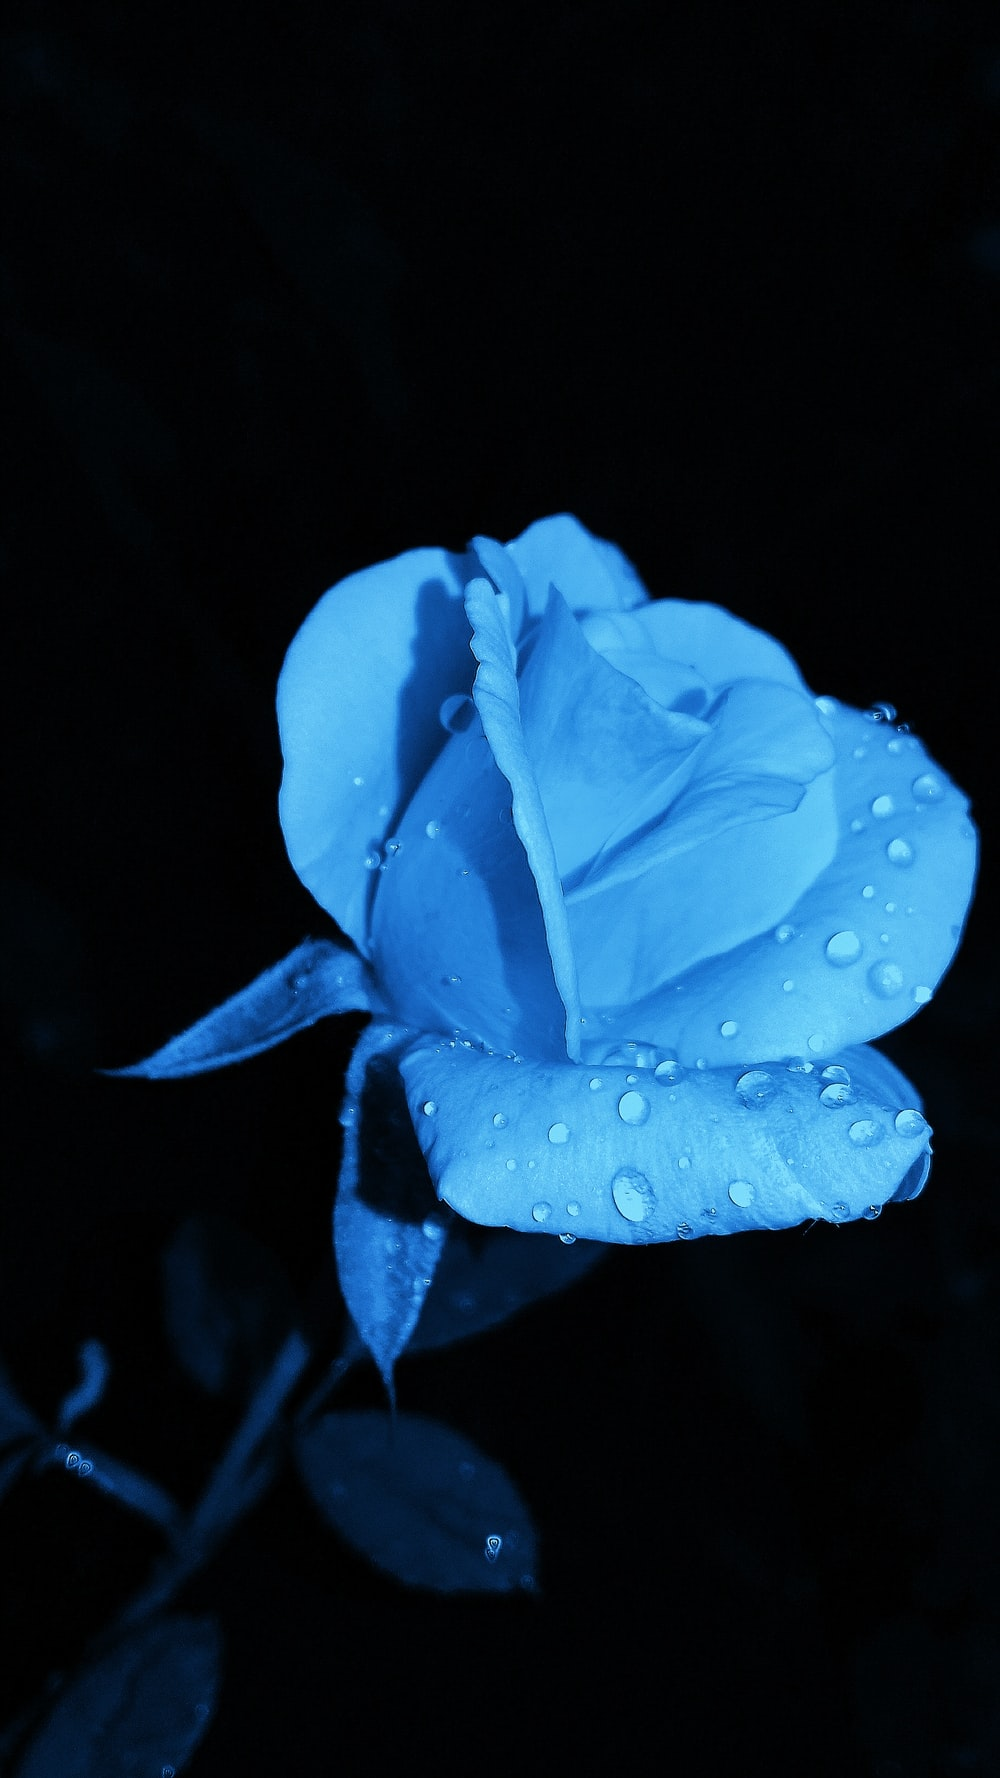 blue rose with water droplet